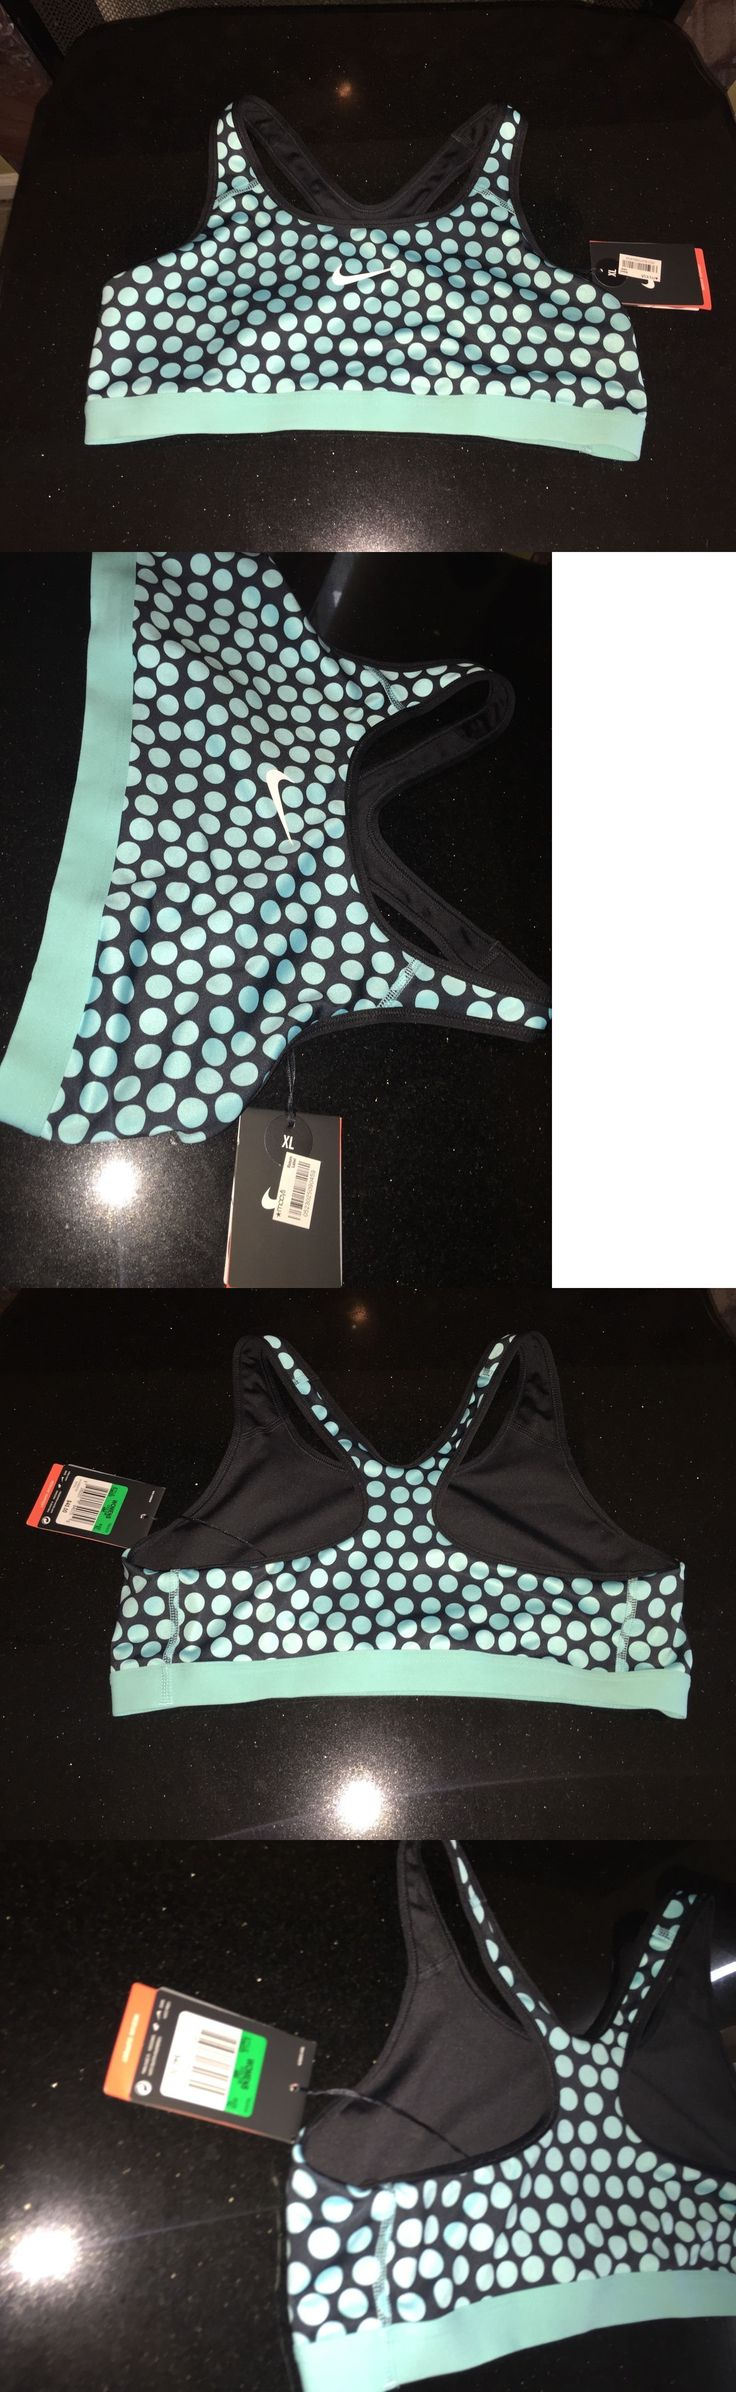 Sports Bras 59315: Nwt Nike Blue Polka Dot Victory Dri-Fit Compression Support Sports Bra Womens Xl -> BUY IT NOW ONLY: $32.87 on eBay!